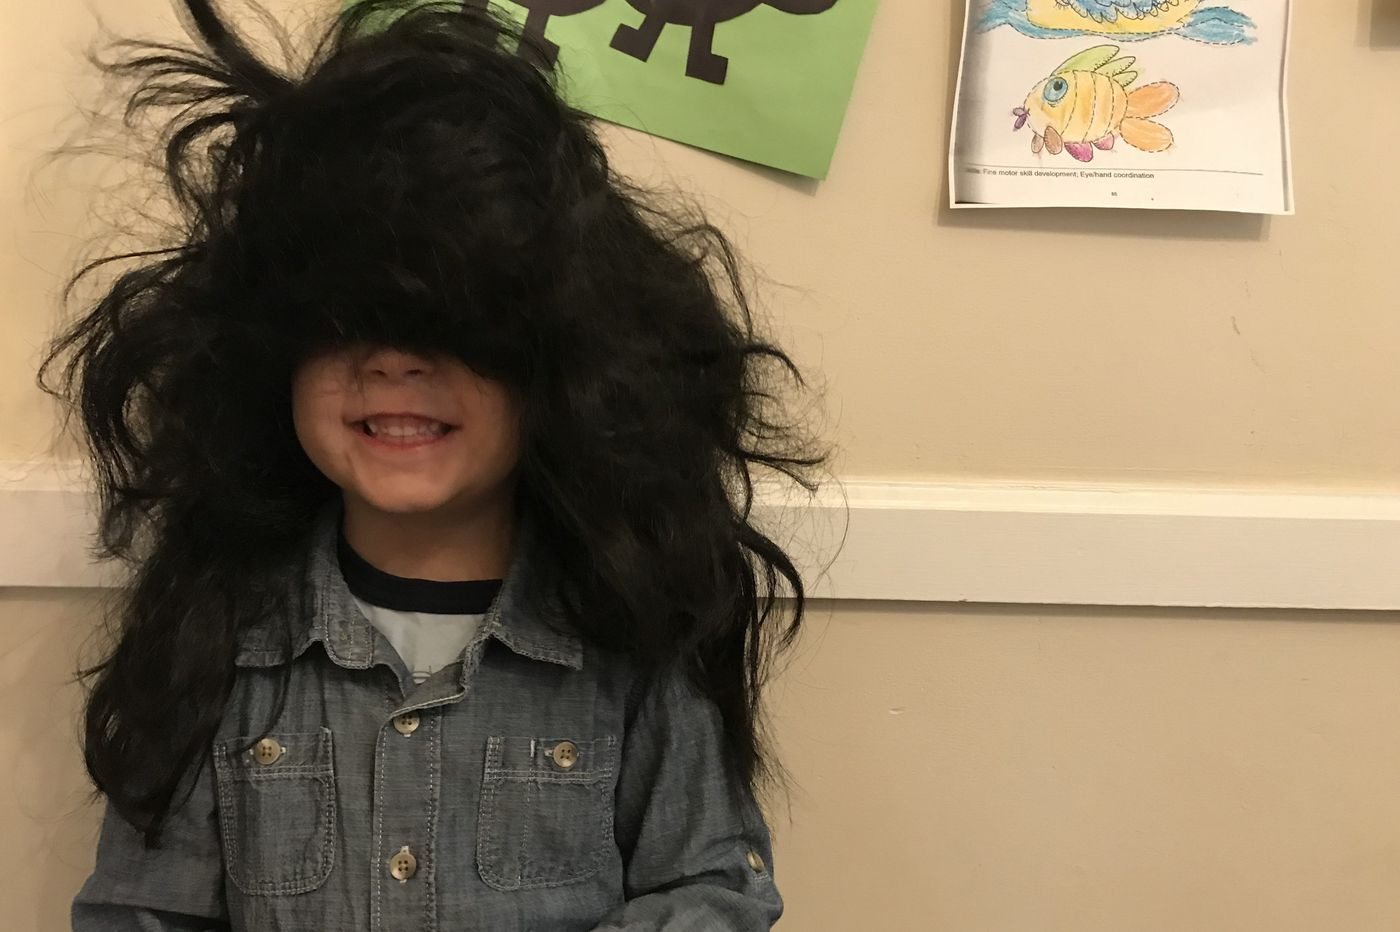 A Steven Tyler wig, a 'Hammer' — and Halloween laughter galore | Maria Panaritis